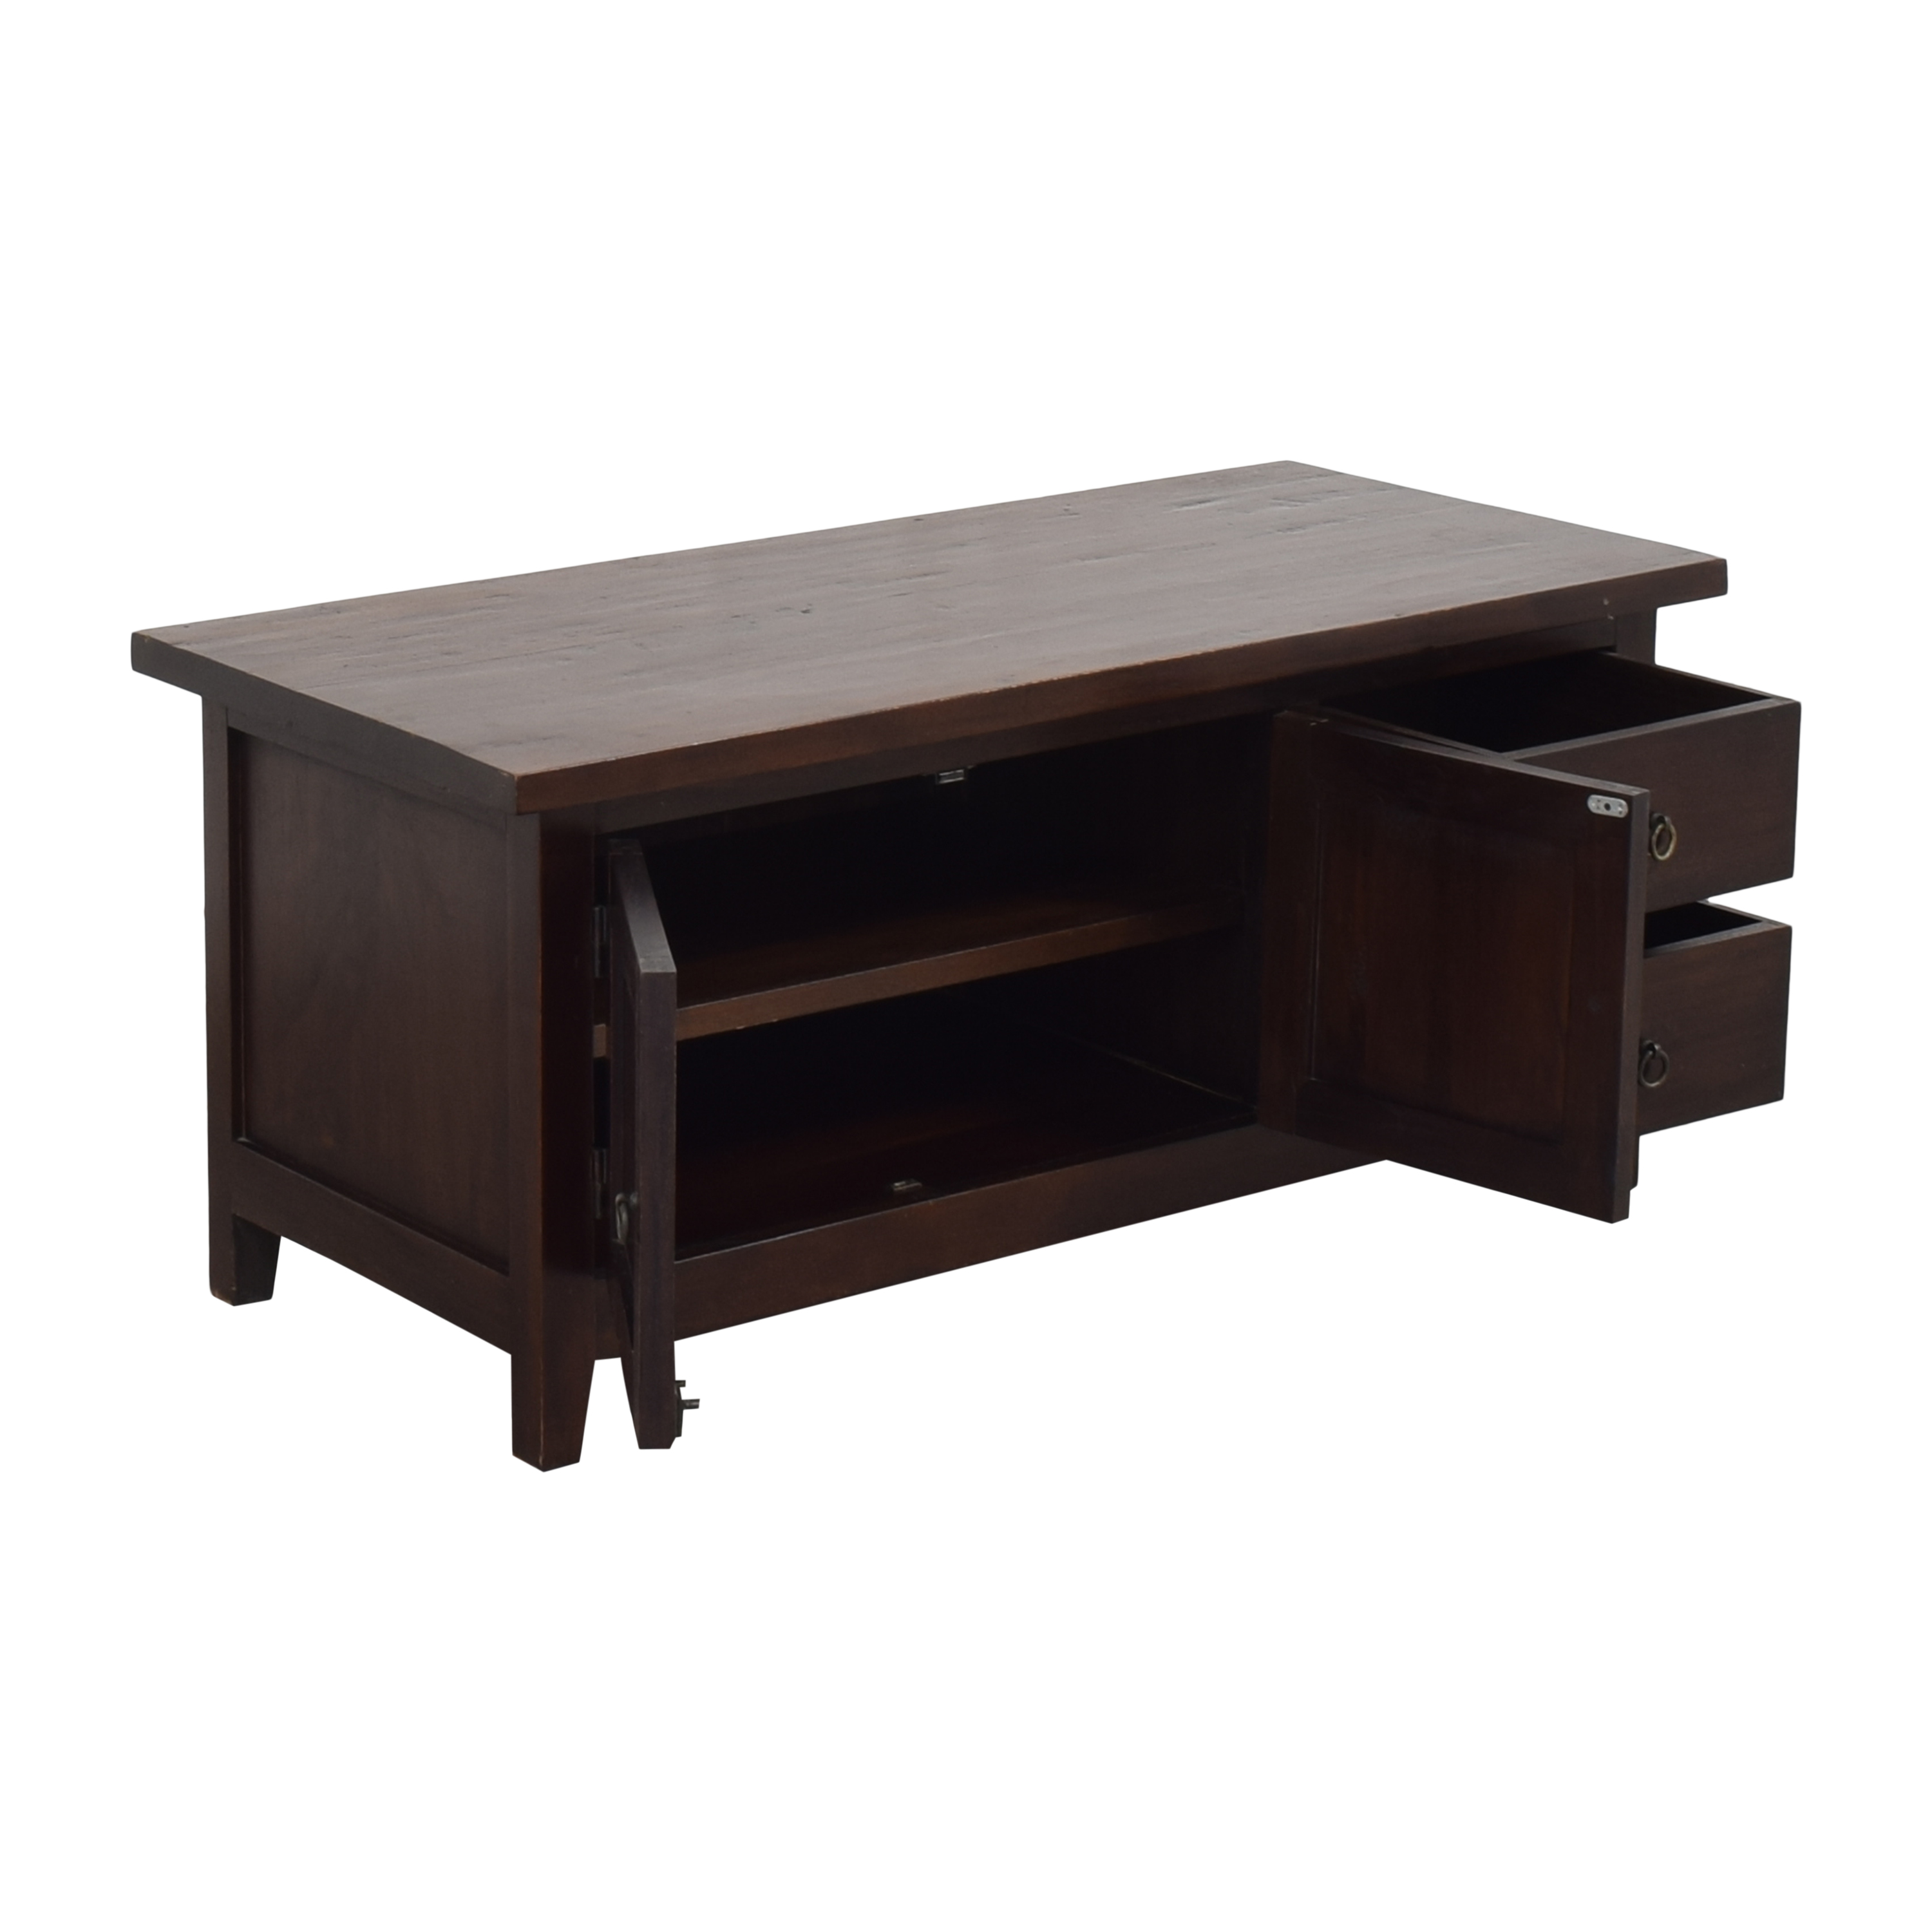 Crate & Barrel Storage Coffee Table / Coffee Tables